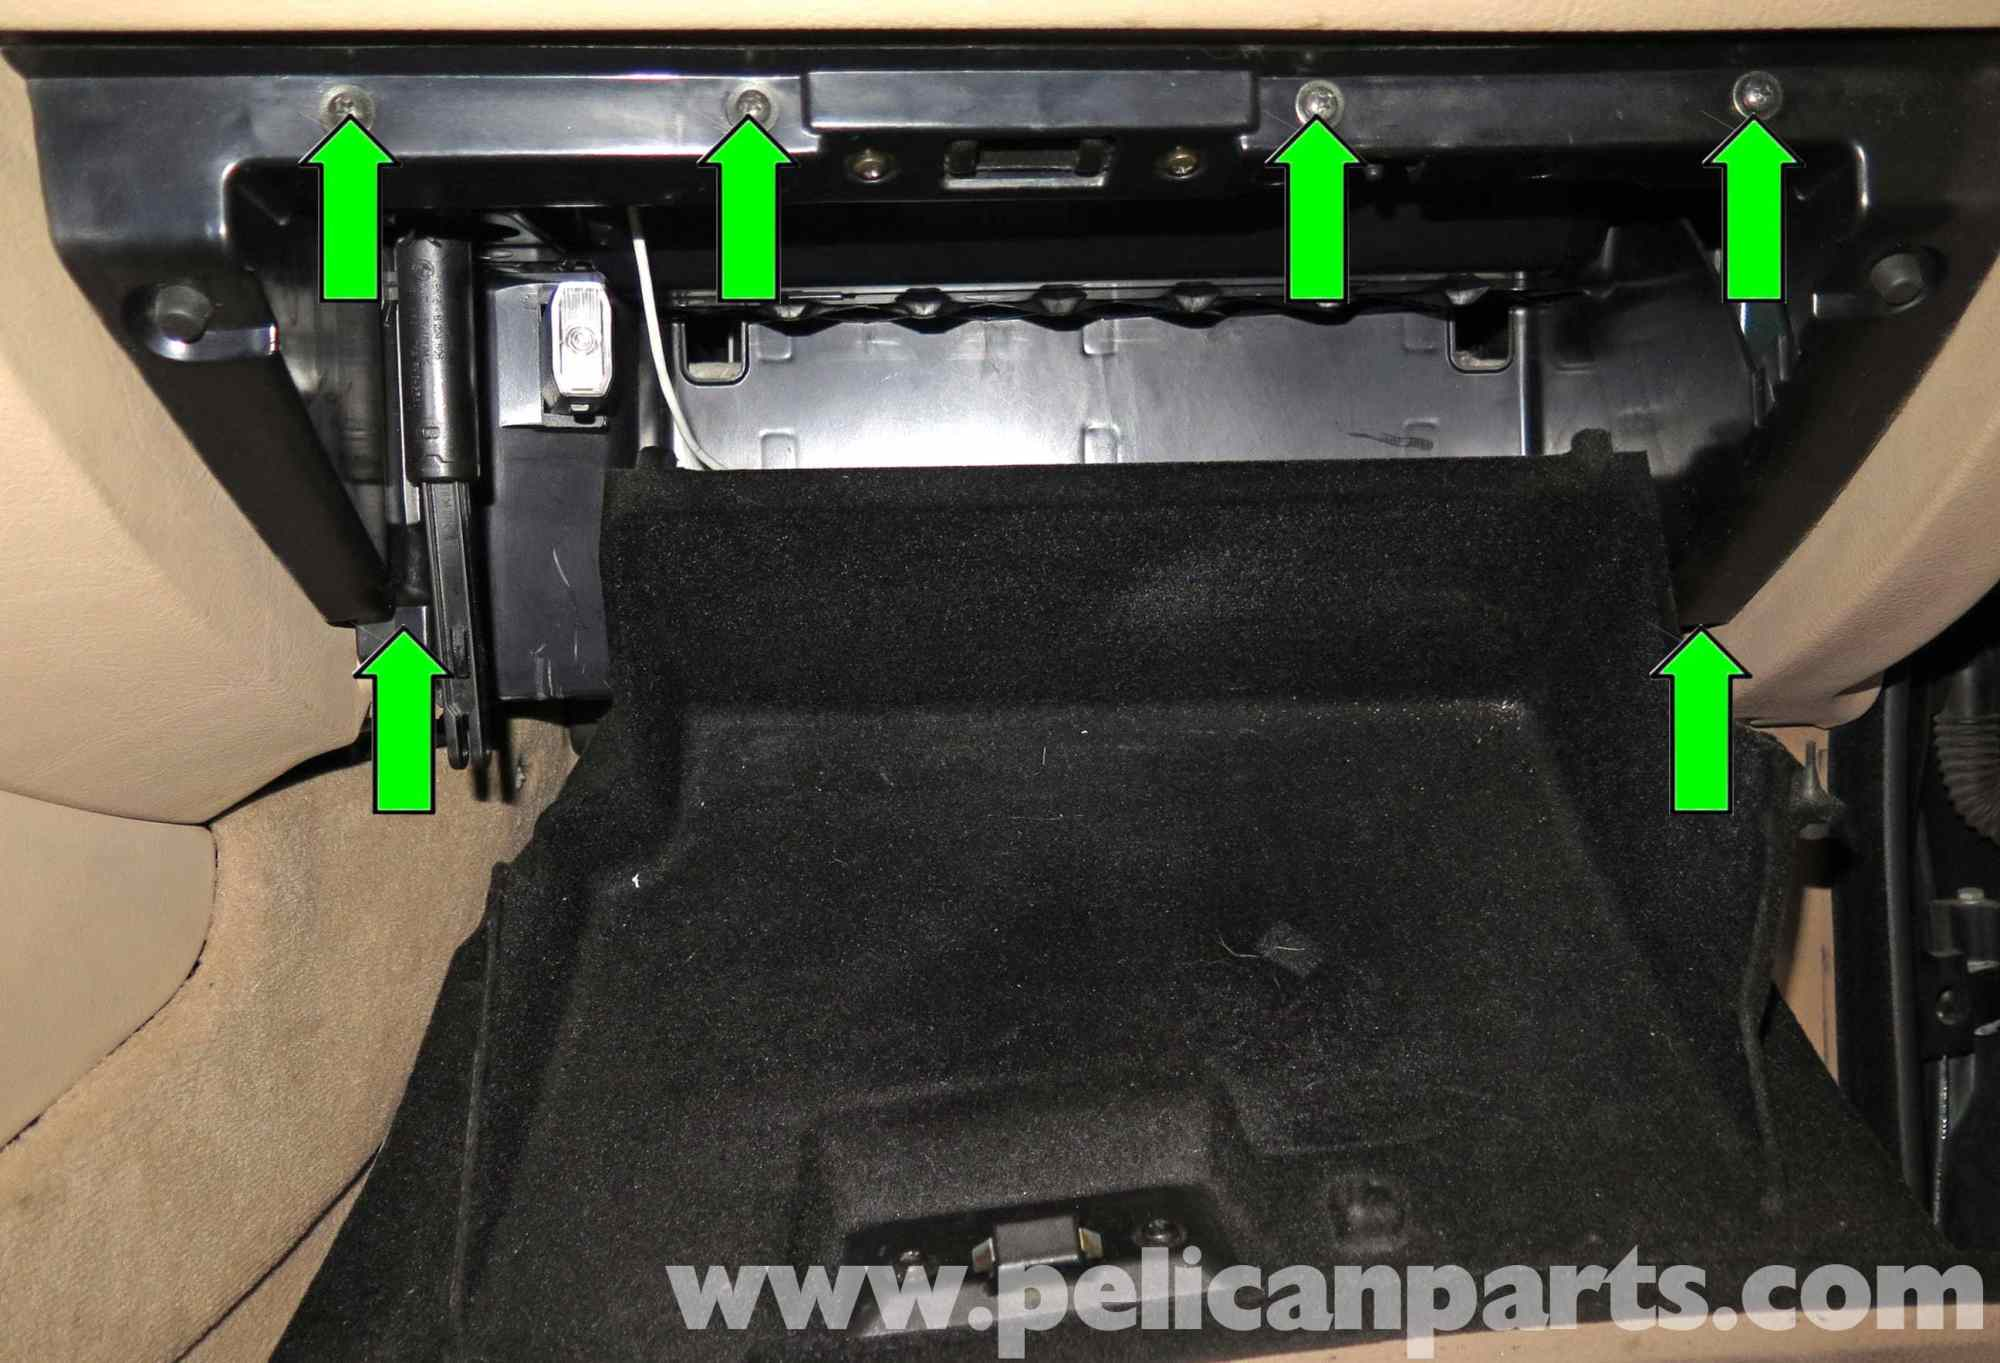 hight resolution of pelican technical article bmw x5 glove box removal 2013 bmw x5 fuse diagram 2004 bmw x5 fuse glove box